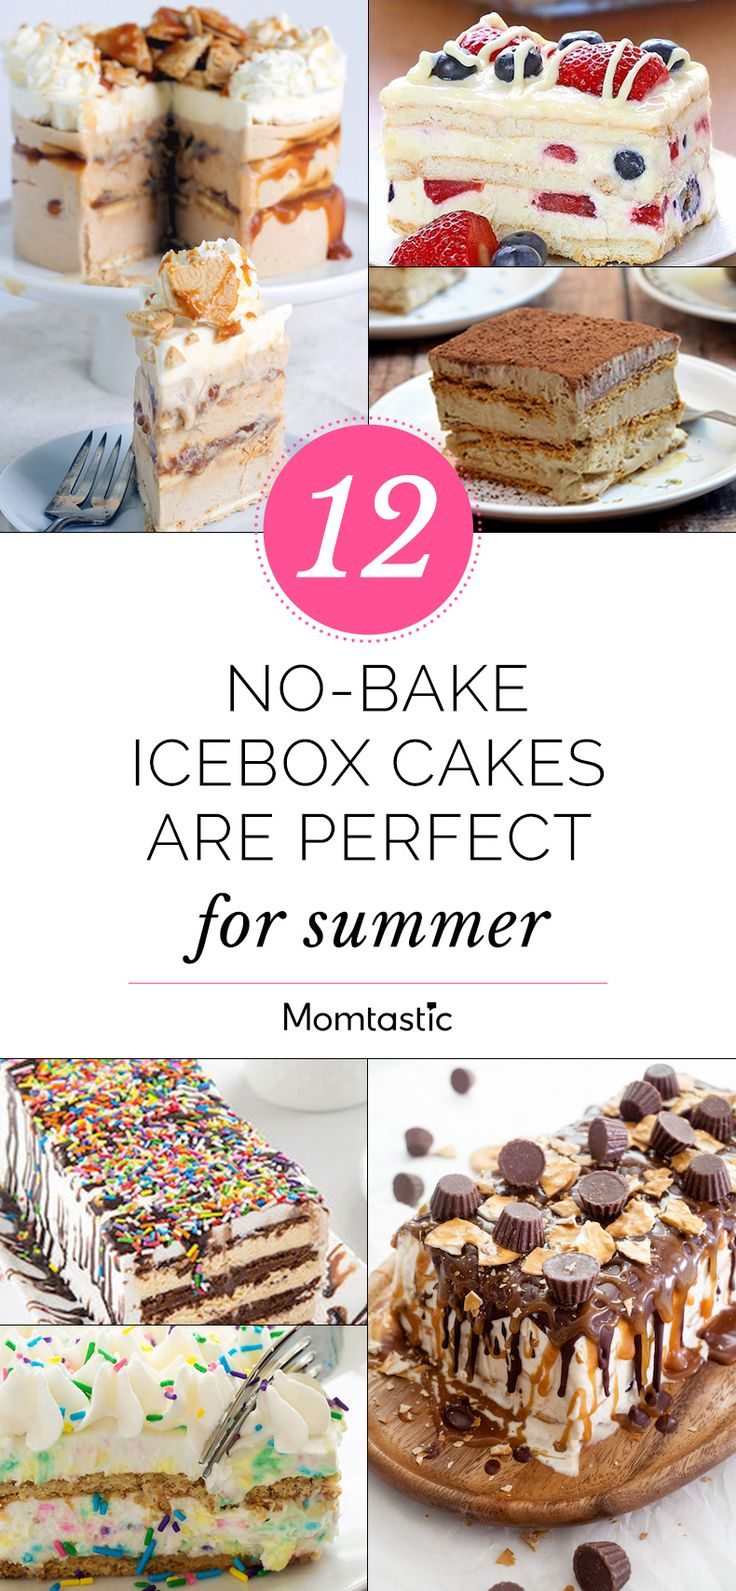 These quick and easy no-bake icebox cakes are perfect for any season!